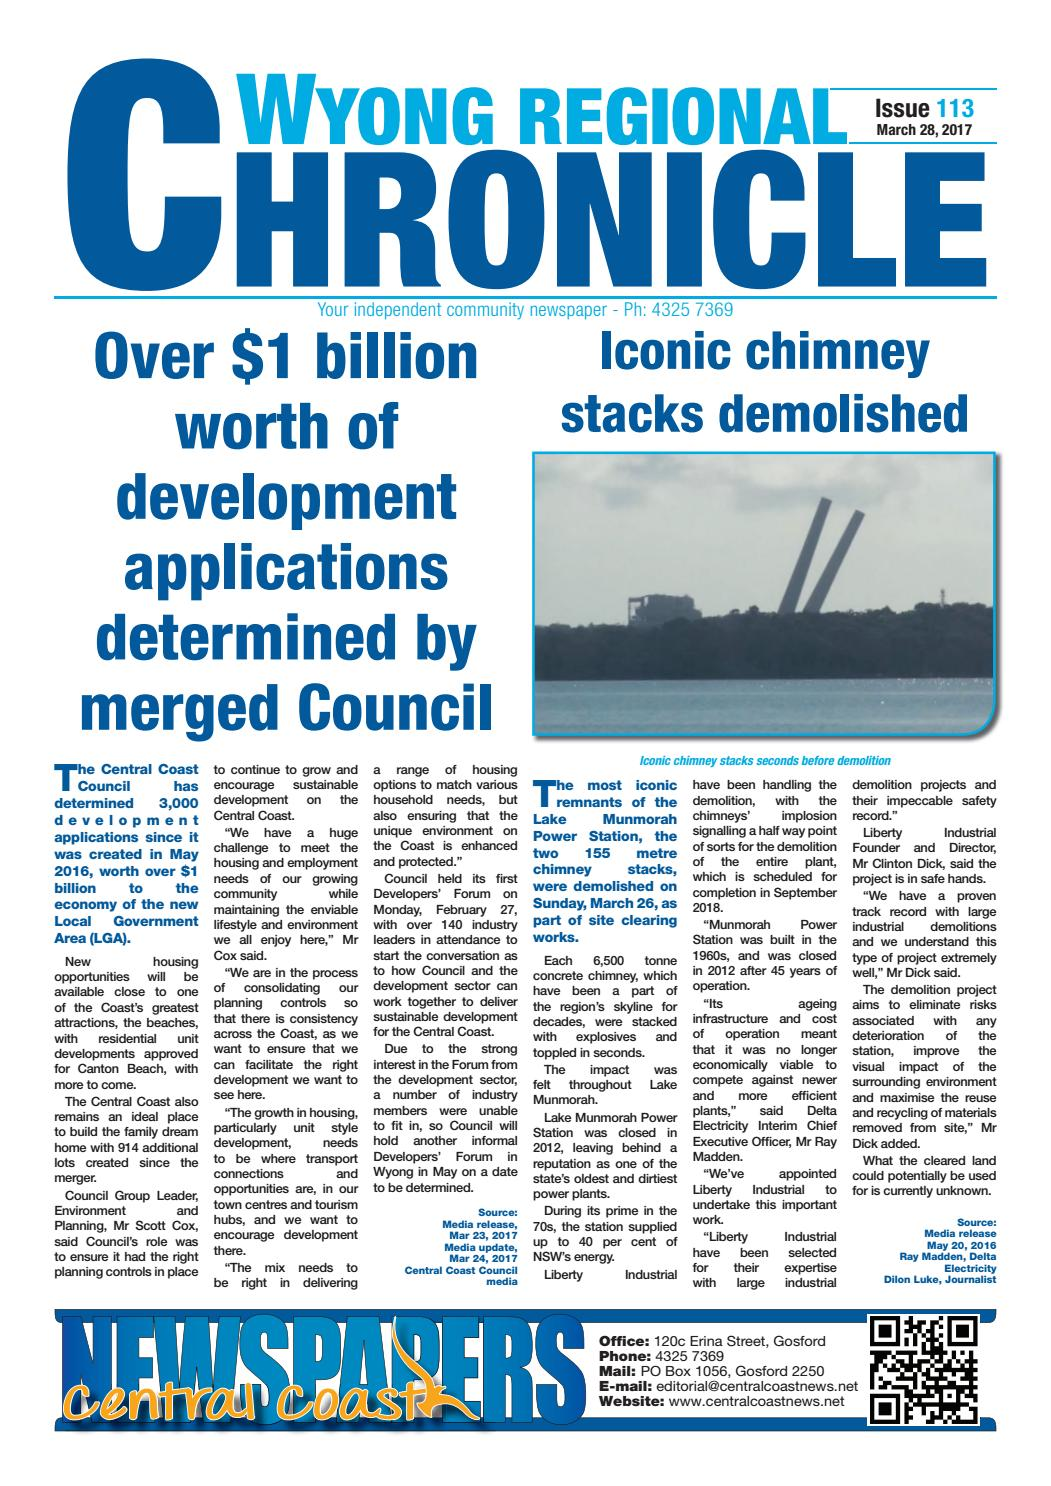 Issue 113 of wyong regional chronicle by central coast newspapers issue 113 of wyong regional chronicle by central coast newspapers issuu geenschuldenfo Choice Image